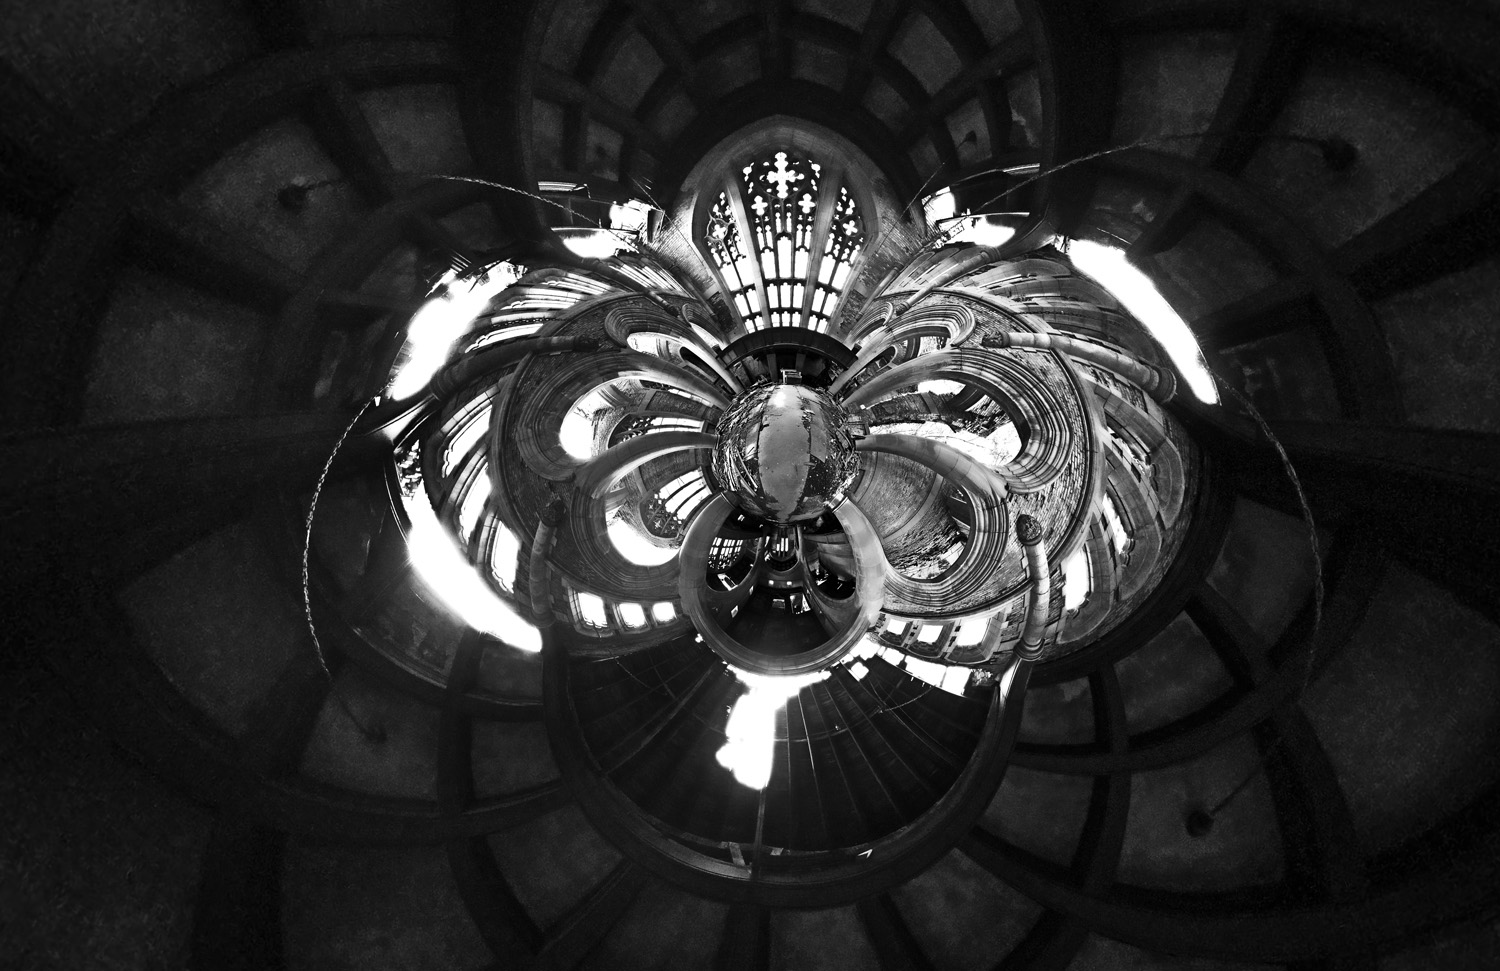 _web_bw_stereographic_down_number_4_Panorama-1